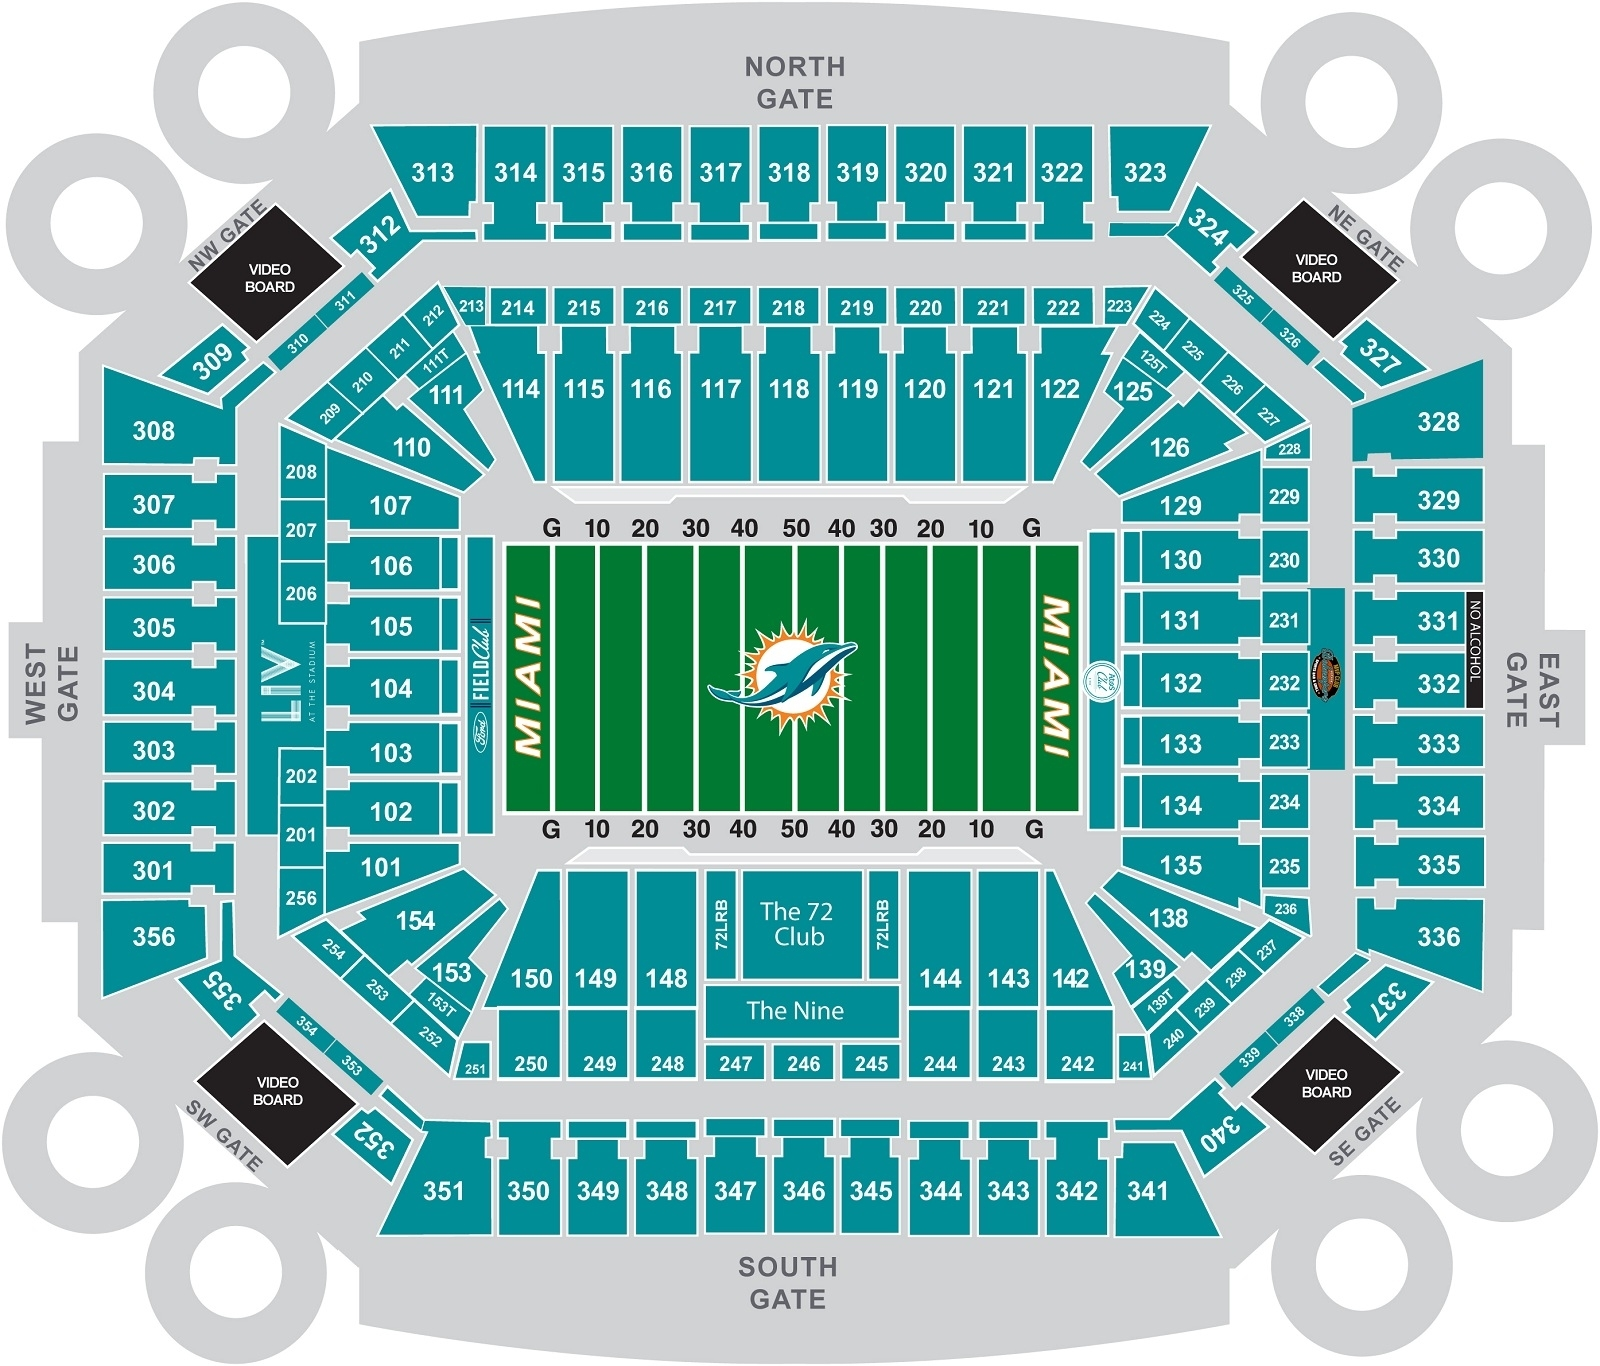 2020 Super Bowl Seating Chart | February 2, 2020 | Fan pertaining to Seating Capacity For The Super Bowl